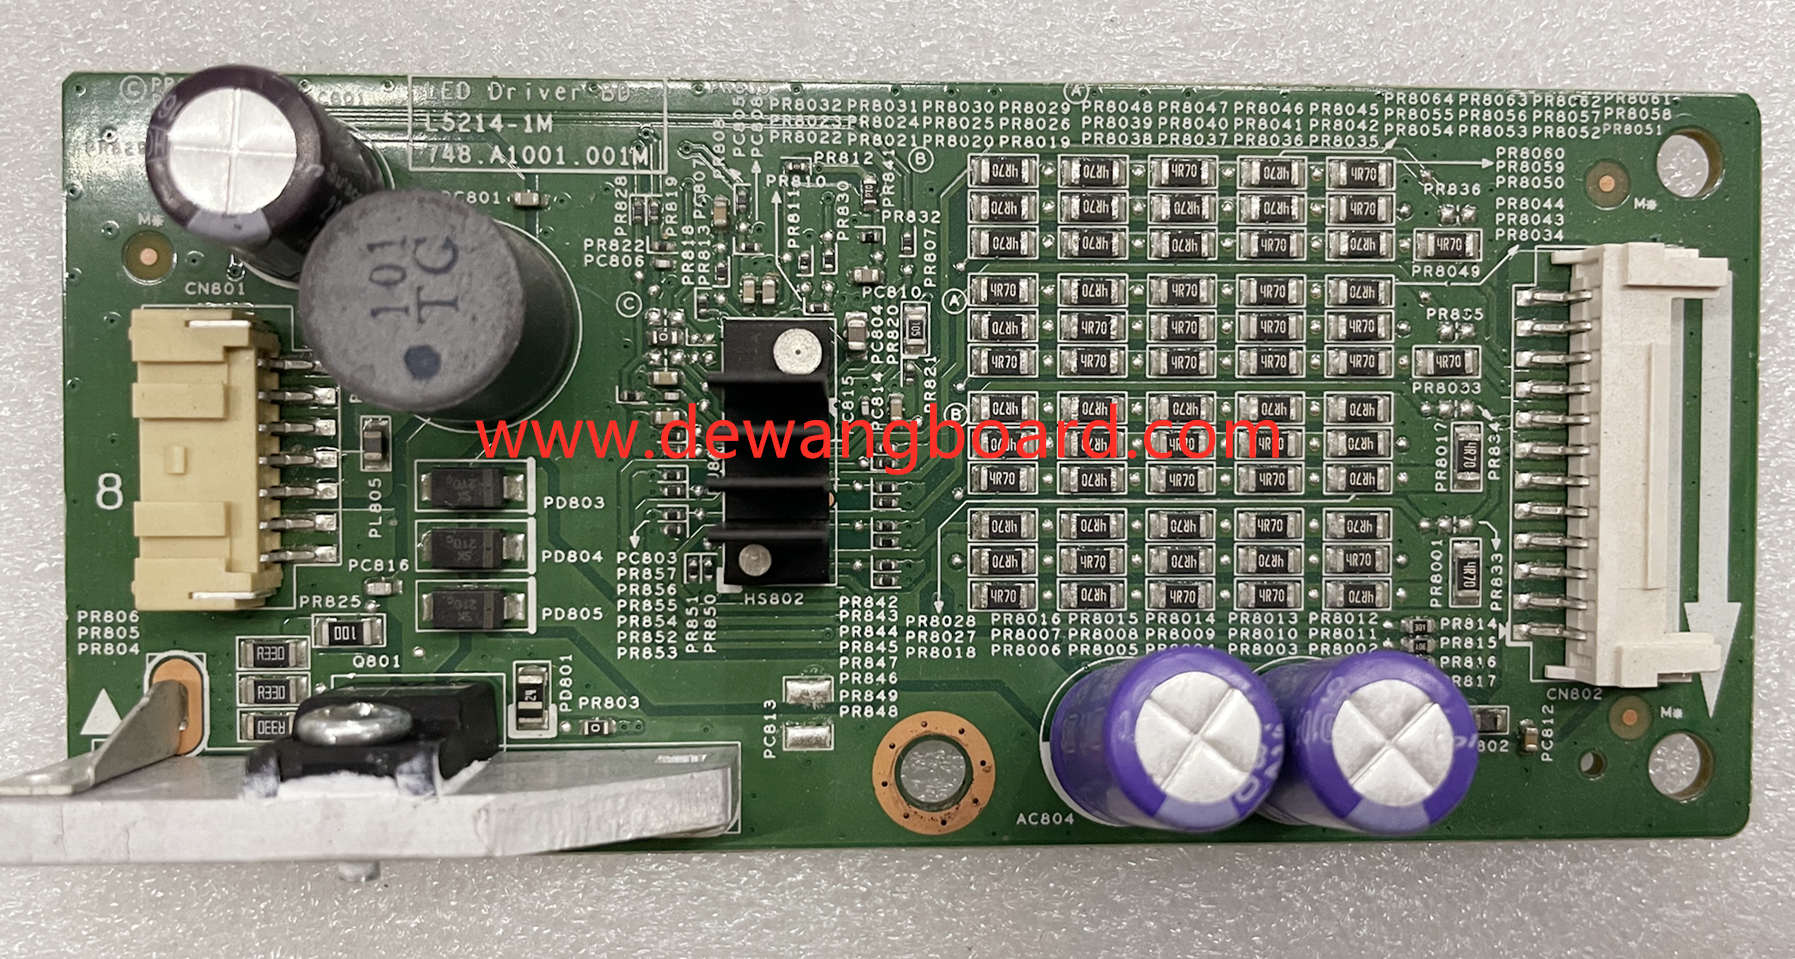 L5214-1M 748.A1001.001M DELL UP2716D backlight boost board